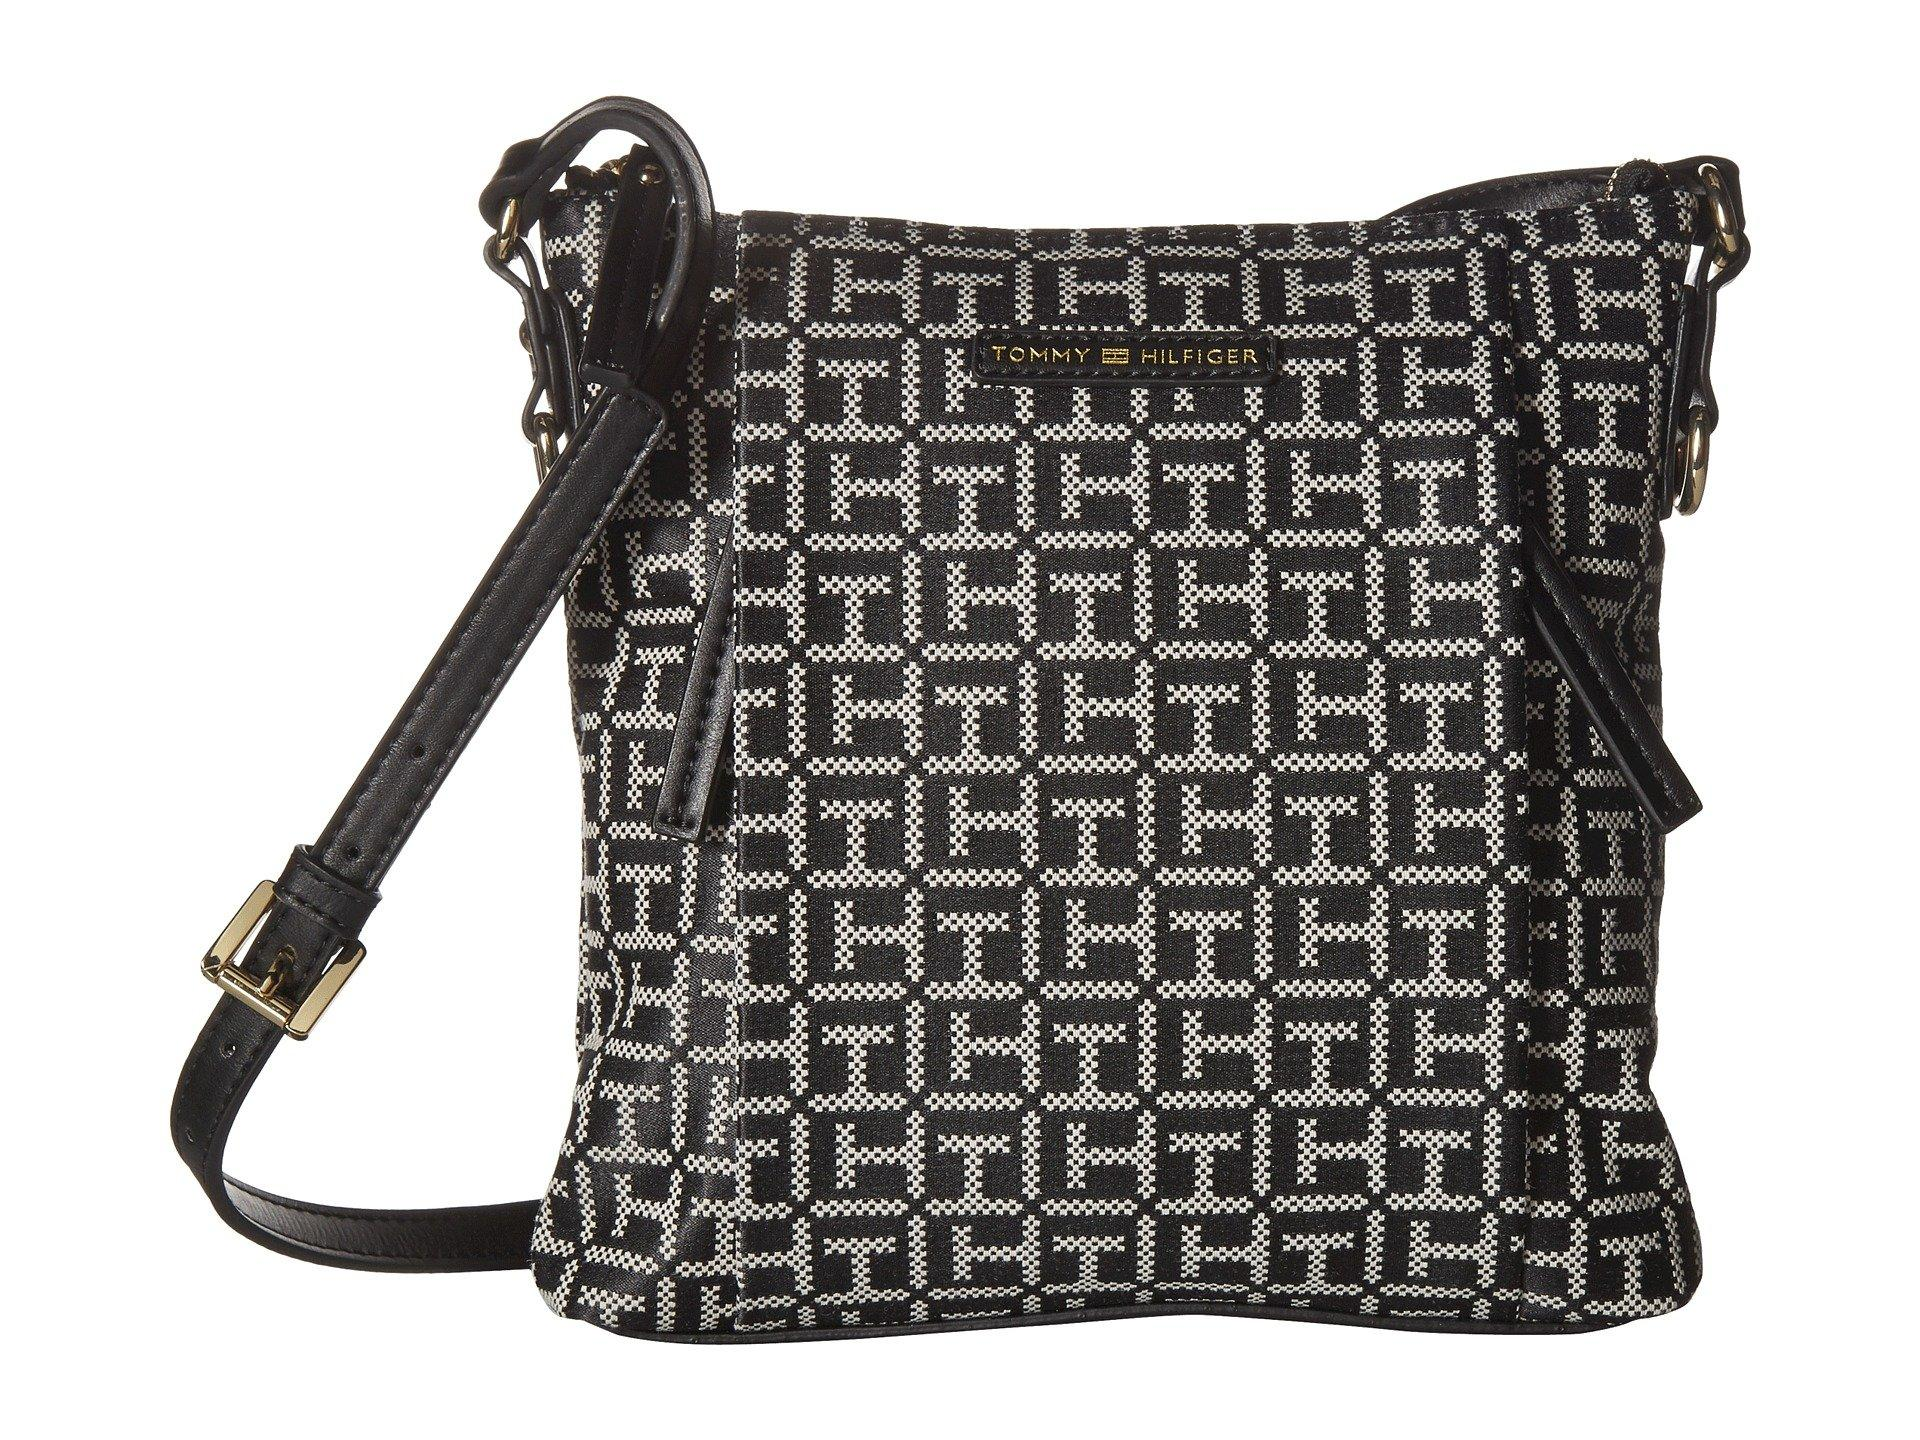 Tommy Hilfiger Kelby Tote, Black/white